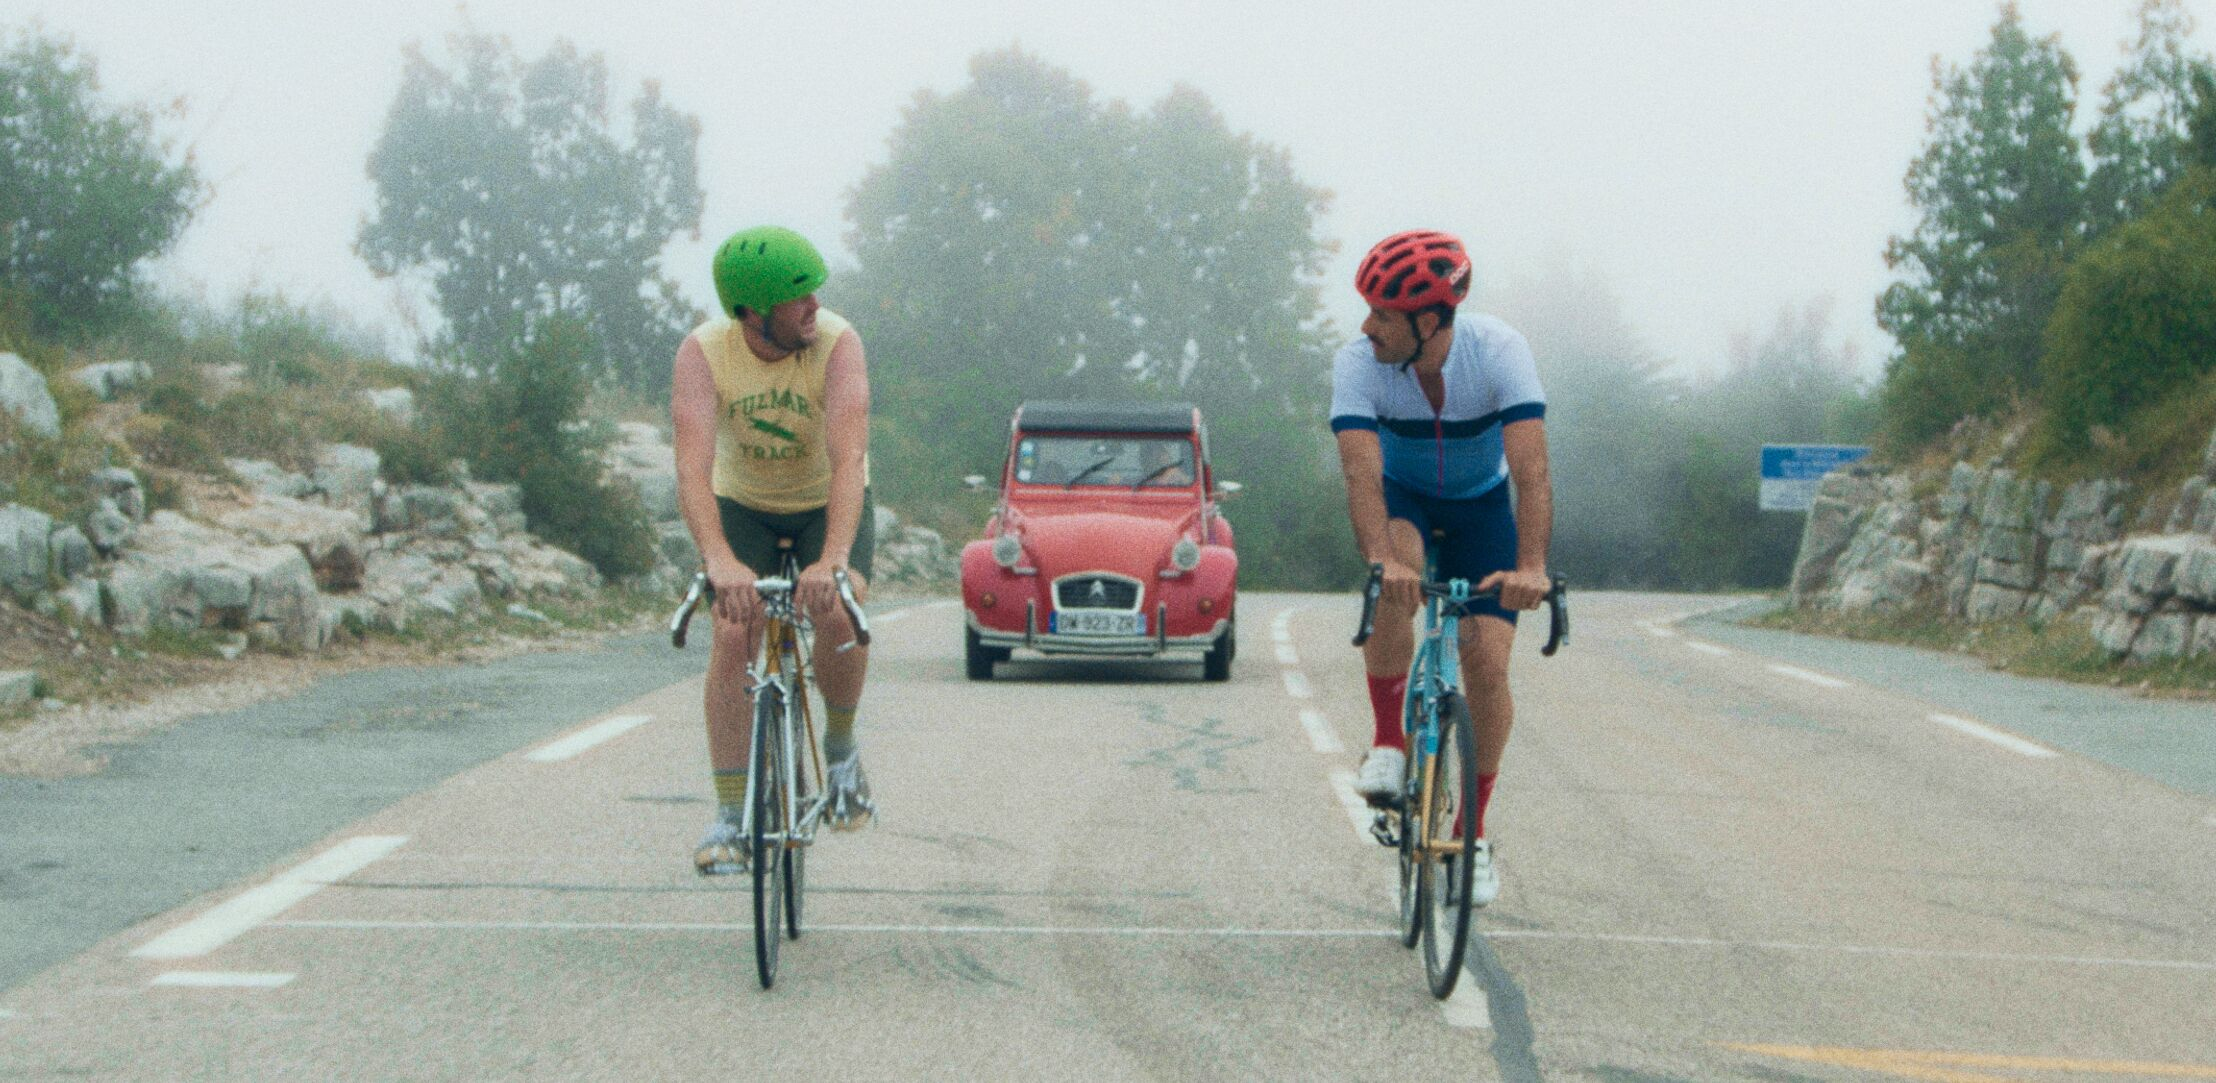 The Climb' Review: A Brilliant Reinvention of the Buddy Comedy | IndieWire